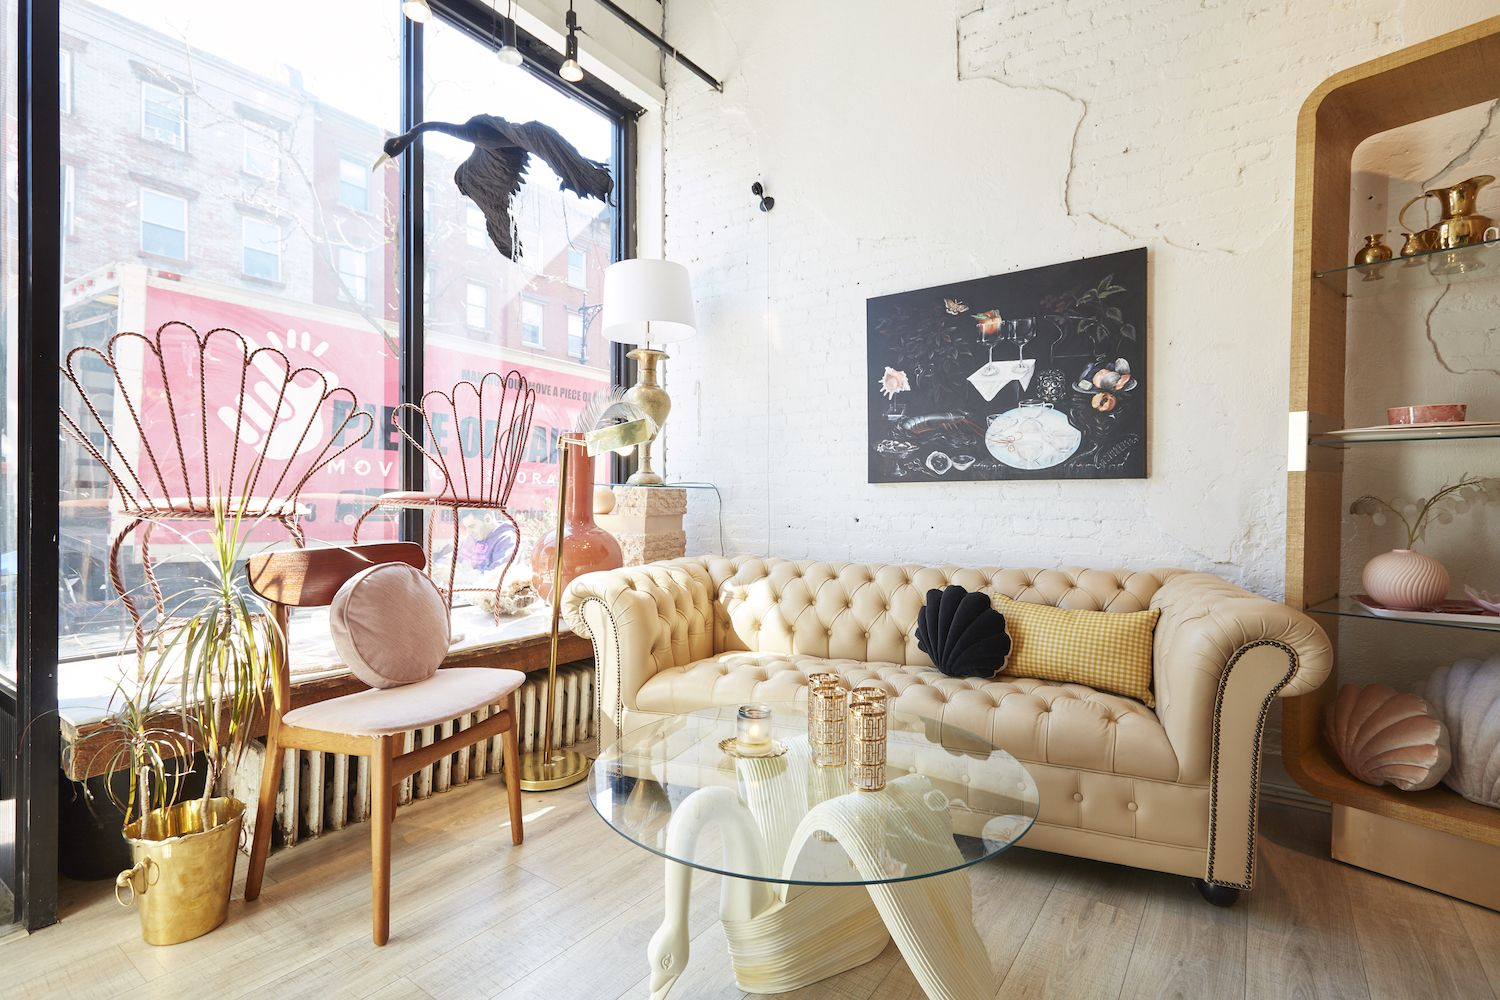 Best Furniture Stores In Nyc New York City Home Decor Stores